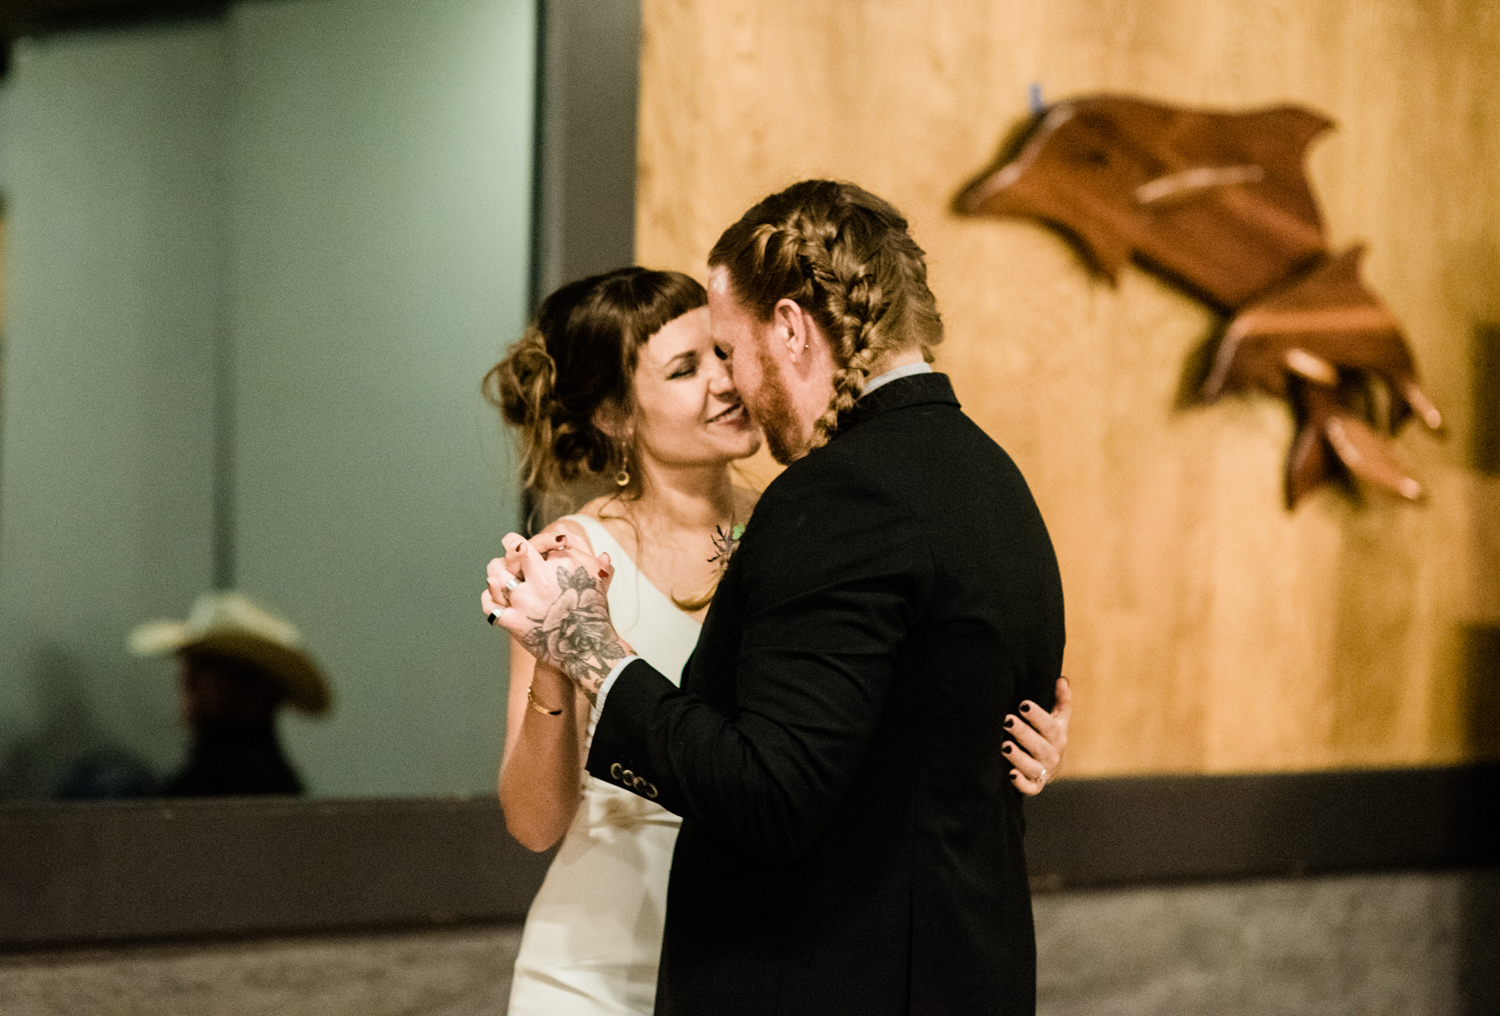 Pacifica_Beach_Surfer_Wedding_140.jpg